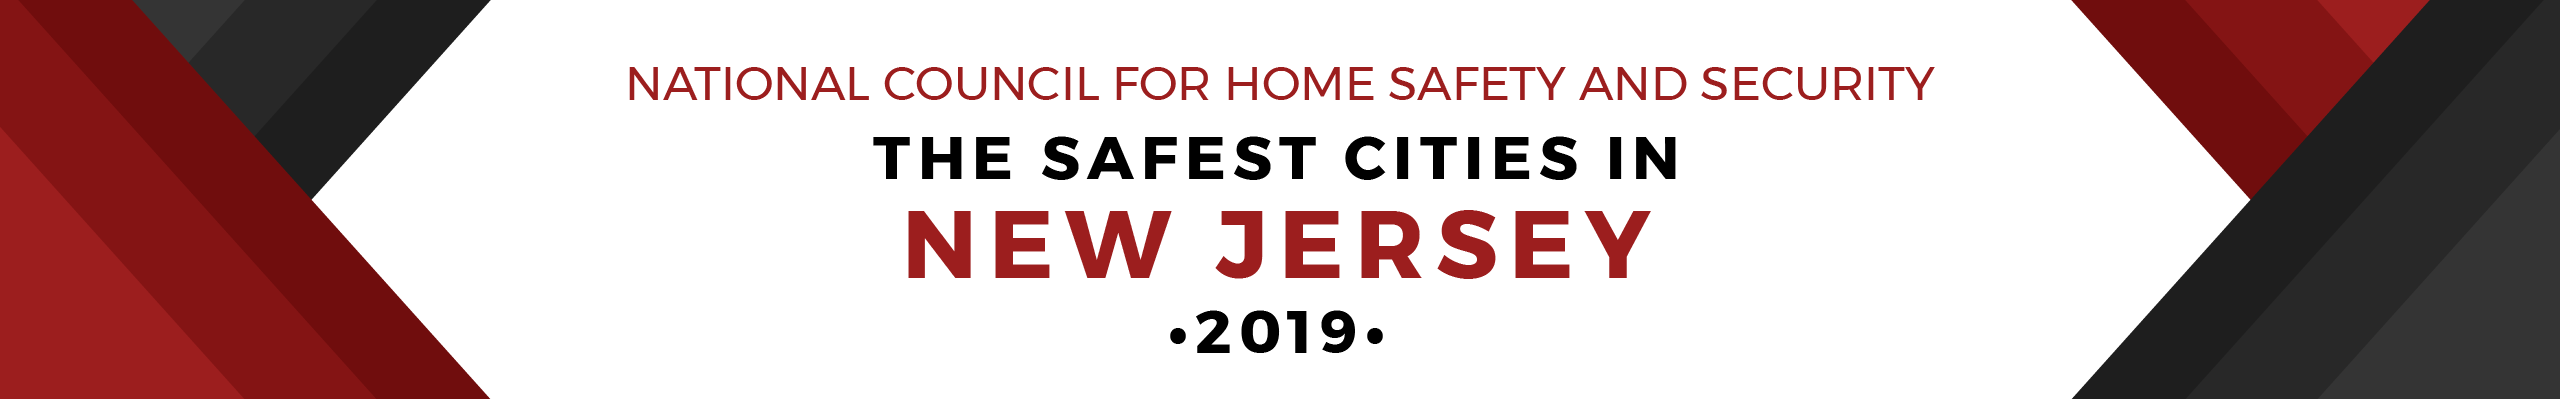 Safest Cities New Jersey - header